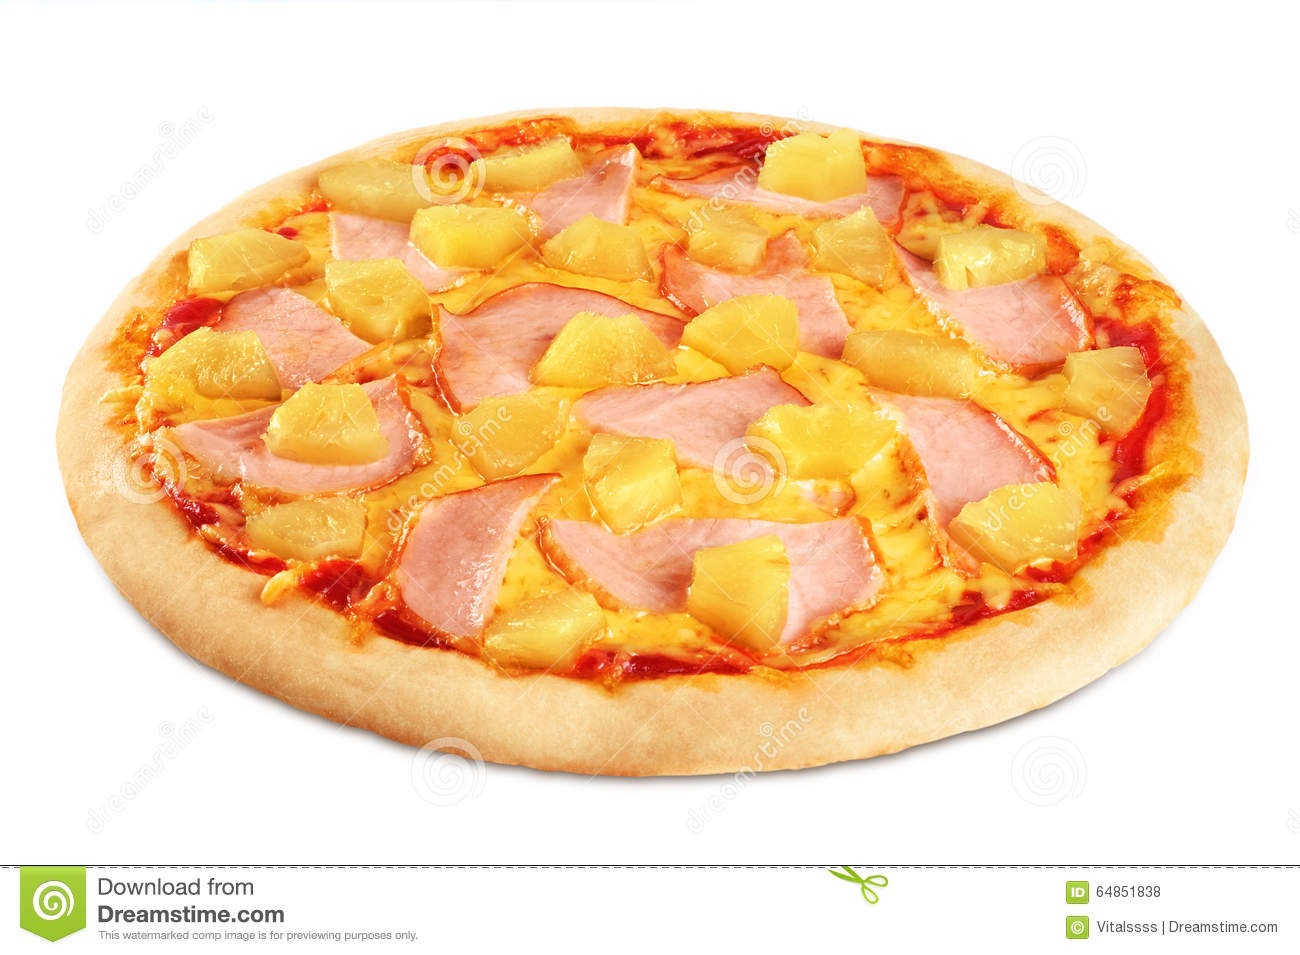 how to cook pineapple for pizza